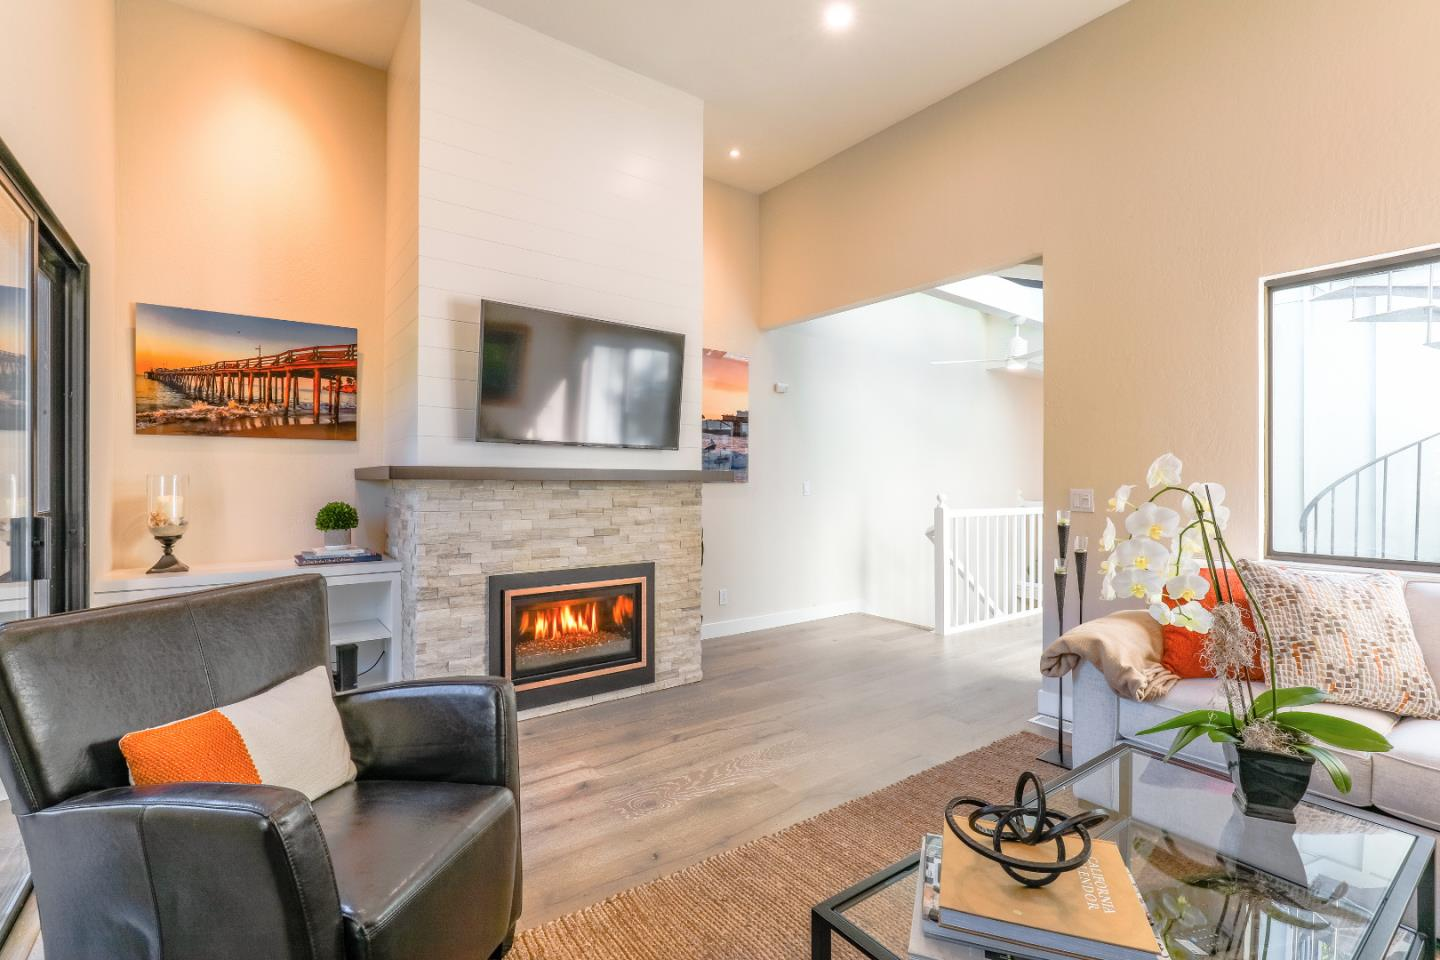 Enjoy the coastal lifestyle in this completely remodeled townhome just 1 mile to Capitola Beach & Soquel Village. Nestled in the trees above Soquel Creek, this gorgeous townhome was professionally designed with all of the latest luxurious amenities. From the wide plank hardwood floors throughout, gorgeous lighting fixtures & recessed lighting, walk-in shower in master, custom cabinetry, stainless steel appliances, Quartz countertops, fresh paint throughout, even gas replaced the electrical for the chefs out there. Oh, did I mention the stunning stackstone fireplace? Great entertaining home too with a reverse floorplan, private patio and multiple balconies and even rooftop deck! Pull into your large 2 car garage with abundant storage and you can walk minutes to Gayles, Shadowbrook, parks, beaches & of course Capitola & Soquel Villages! Really too much to mention,  head to toe finished for the year round resident or for your weekend retreat. Turn key and ready to go! Video coming too!